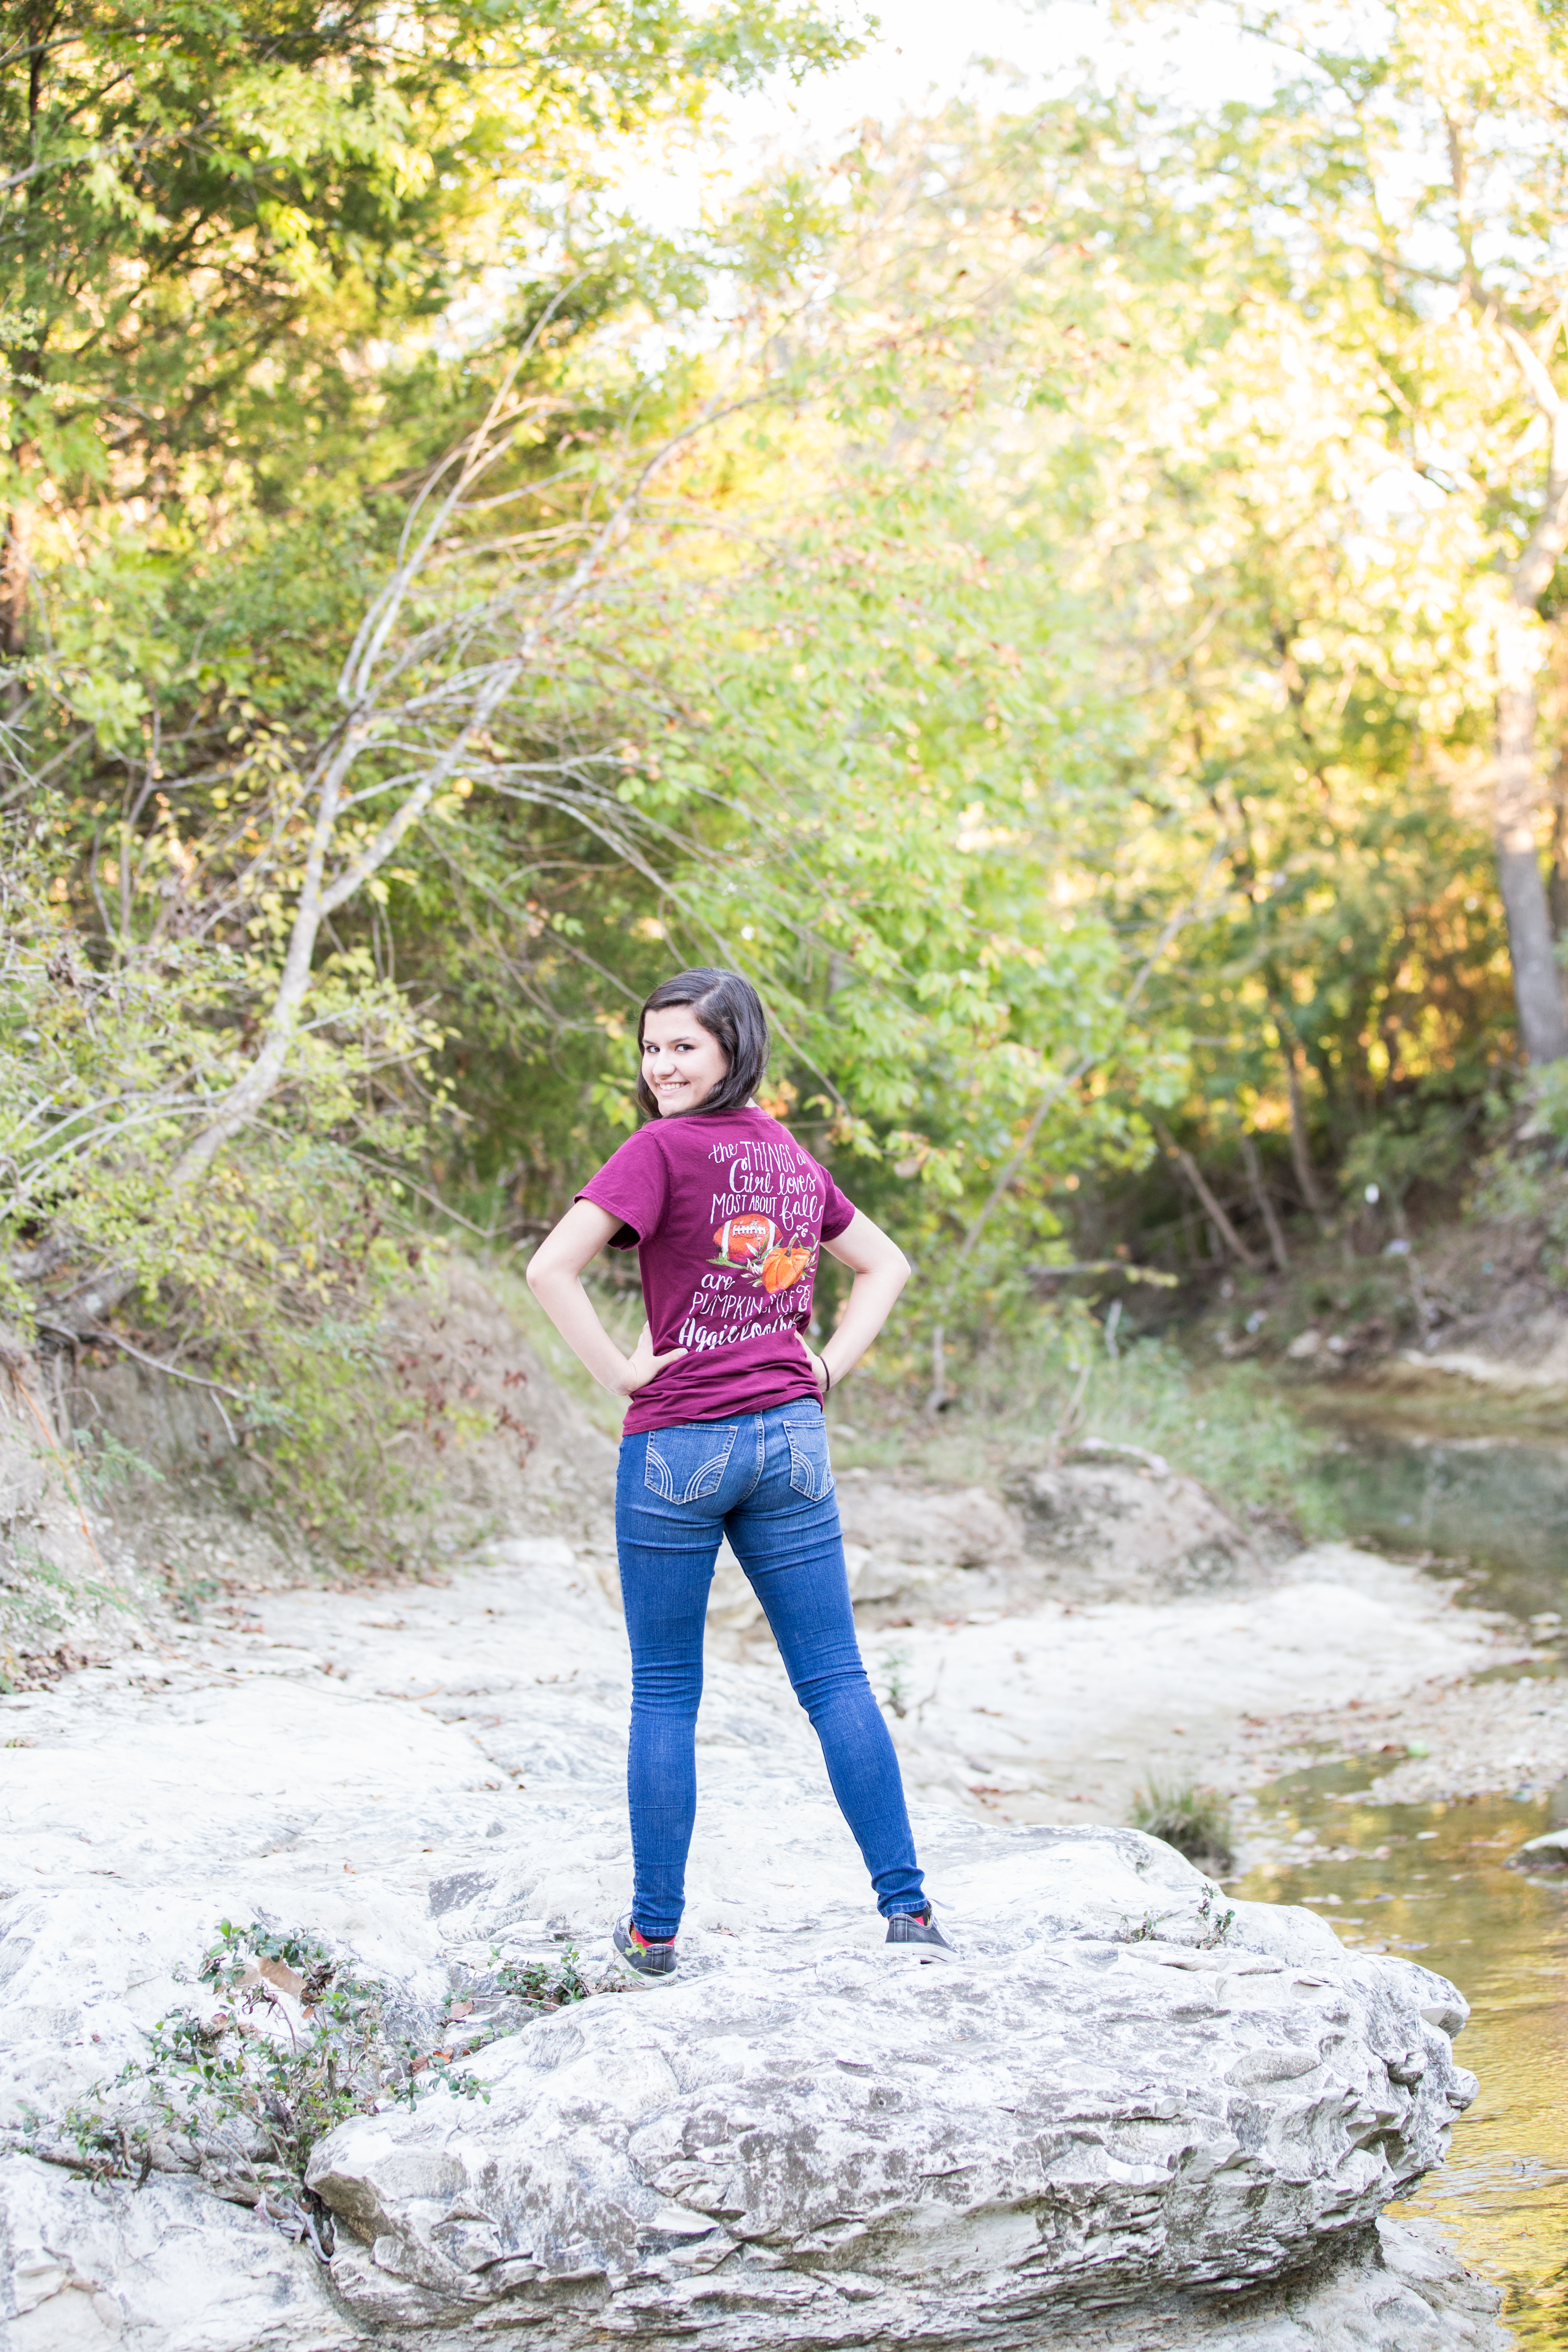 Top 10 Senior Portrait Ideas by 12 by Golightly Images located in Dallas, TX